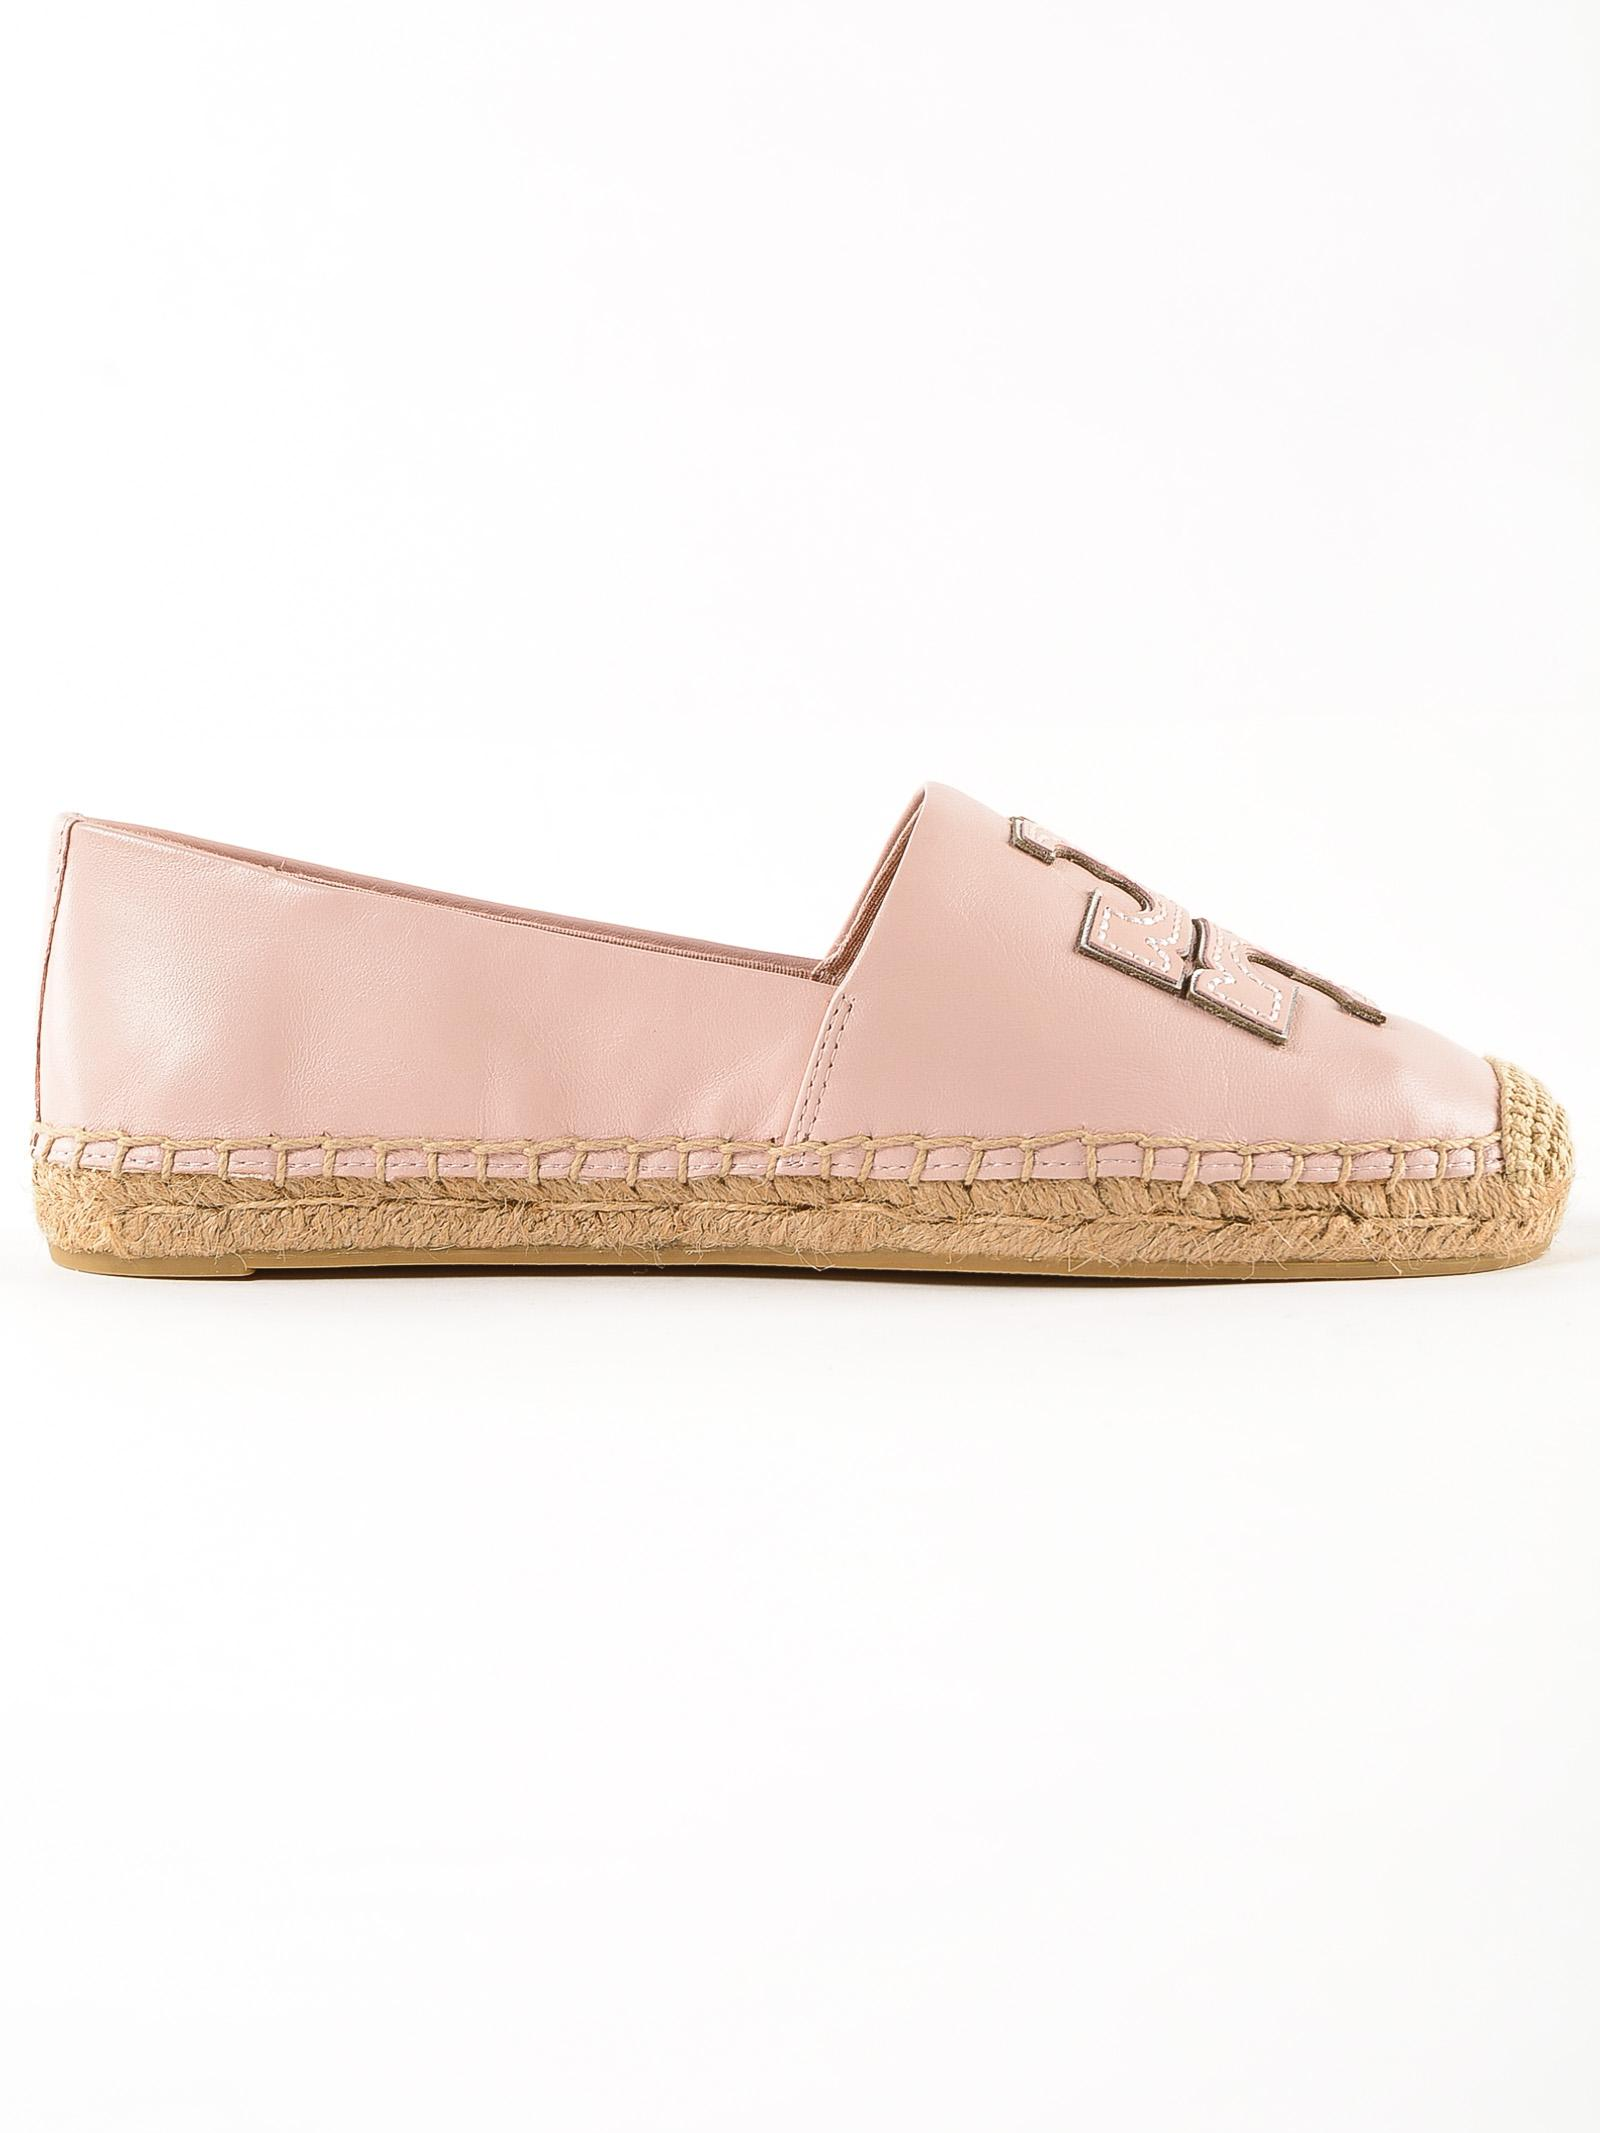 fbf8683eb Lyst - Tory Burch Ines Espadrille in Pink